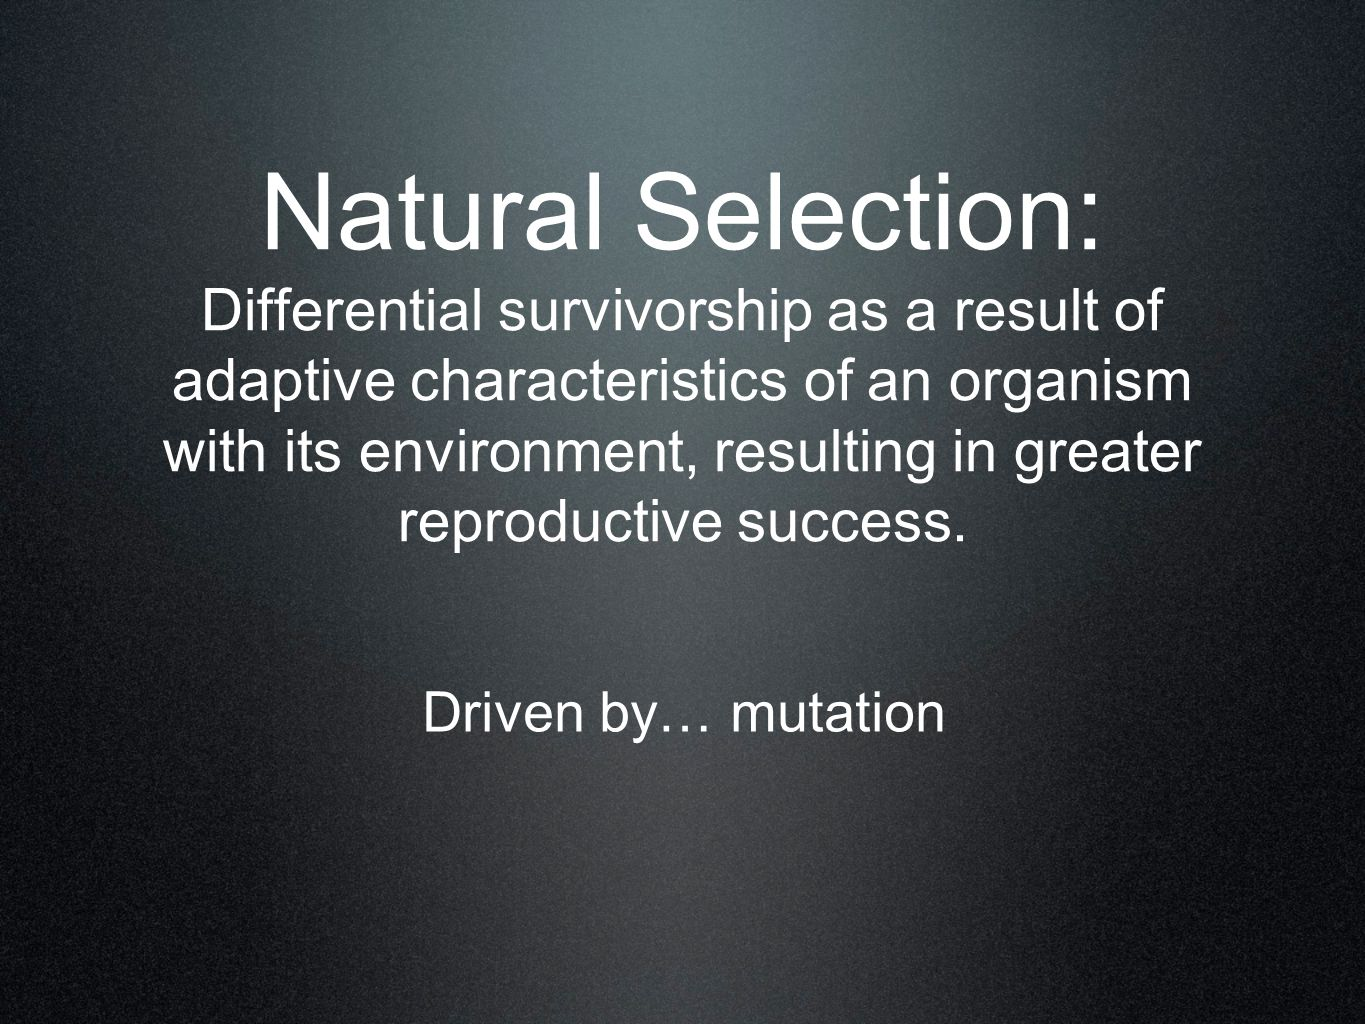 Natural Selection: Differential survivorship as a result of adaptive characteristics of an organism with its environment, resulting in greater reproductive success.